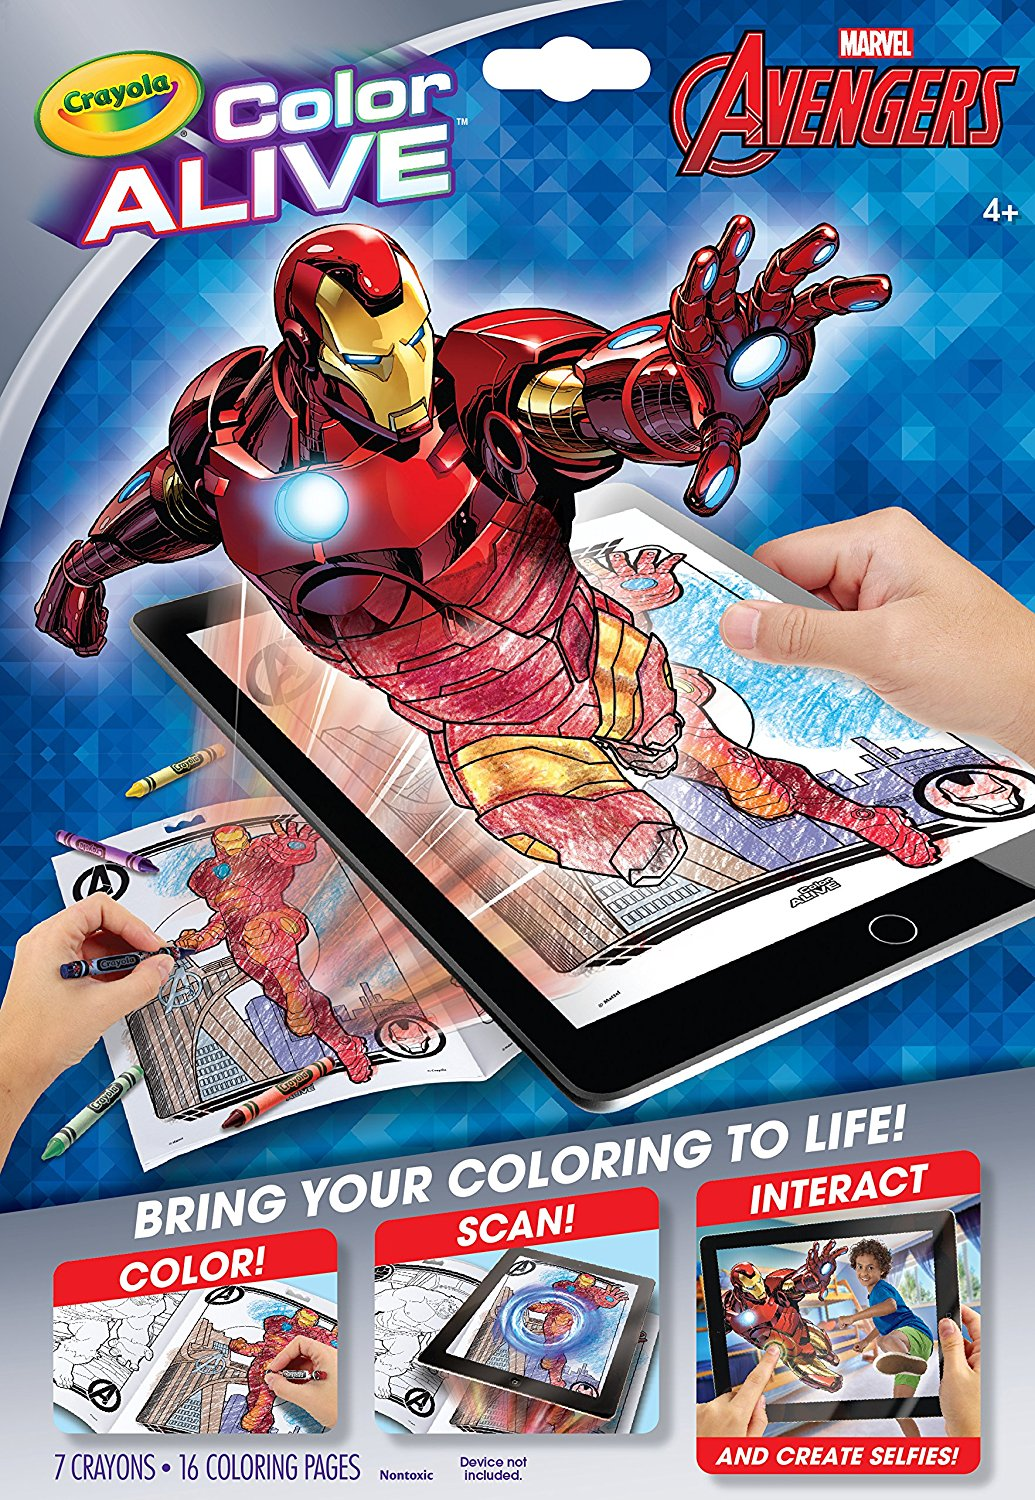 Crayola Avengers Color Alive Action Coloring Pages - Walmart.com